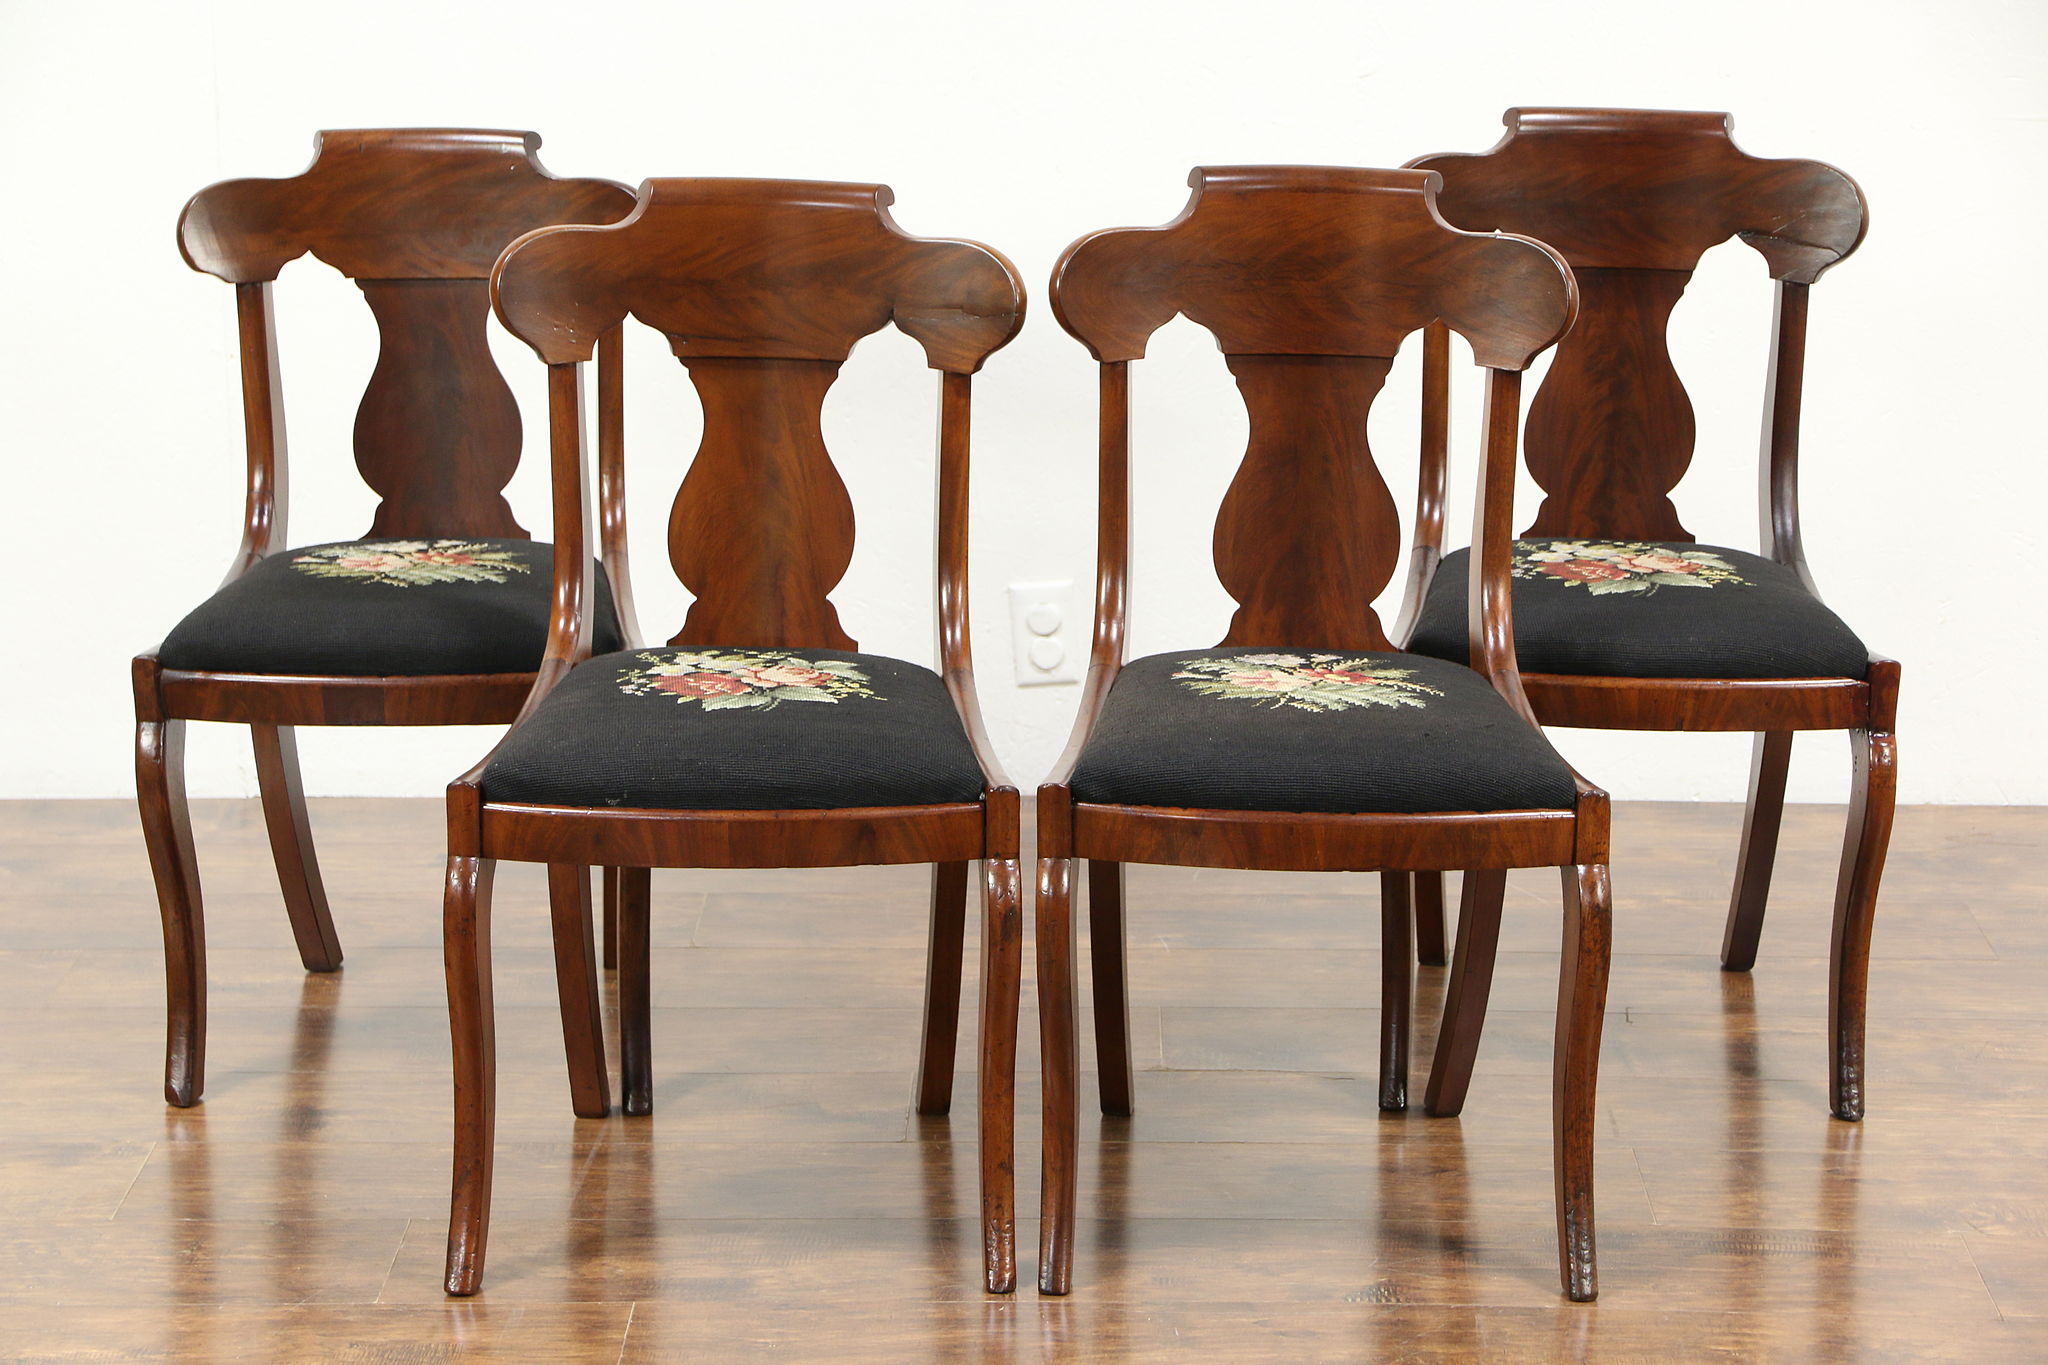 SOLD Set of 4 Empire 1830 s Antique Dining or Game Table Chairs